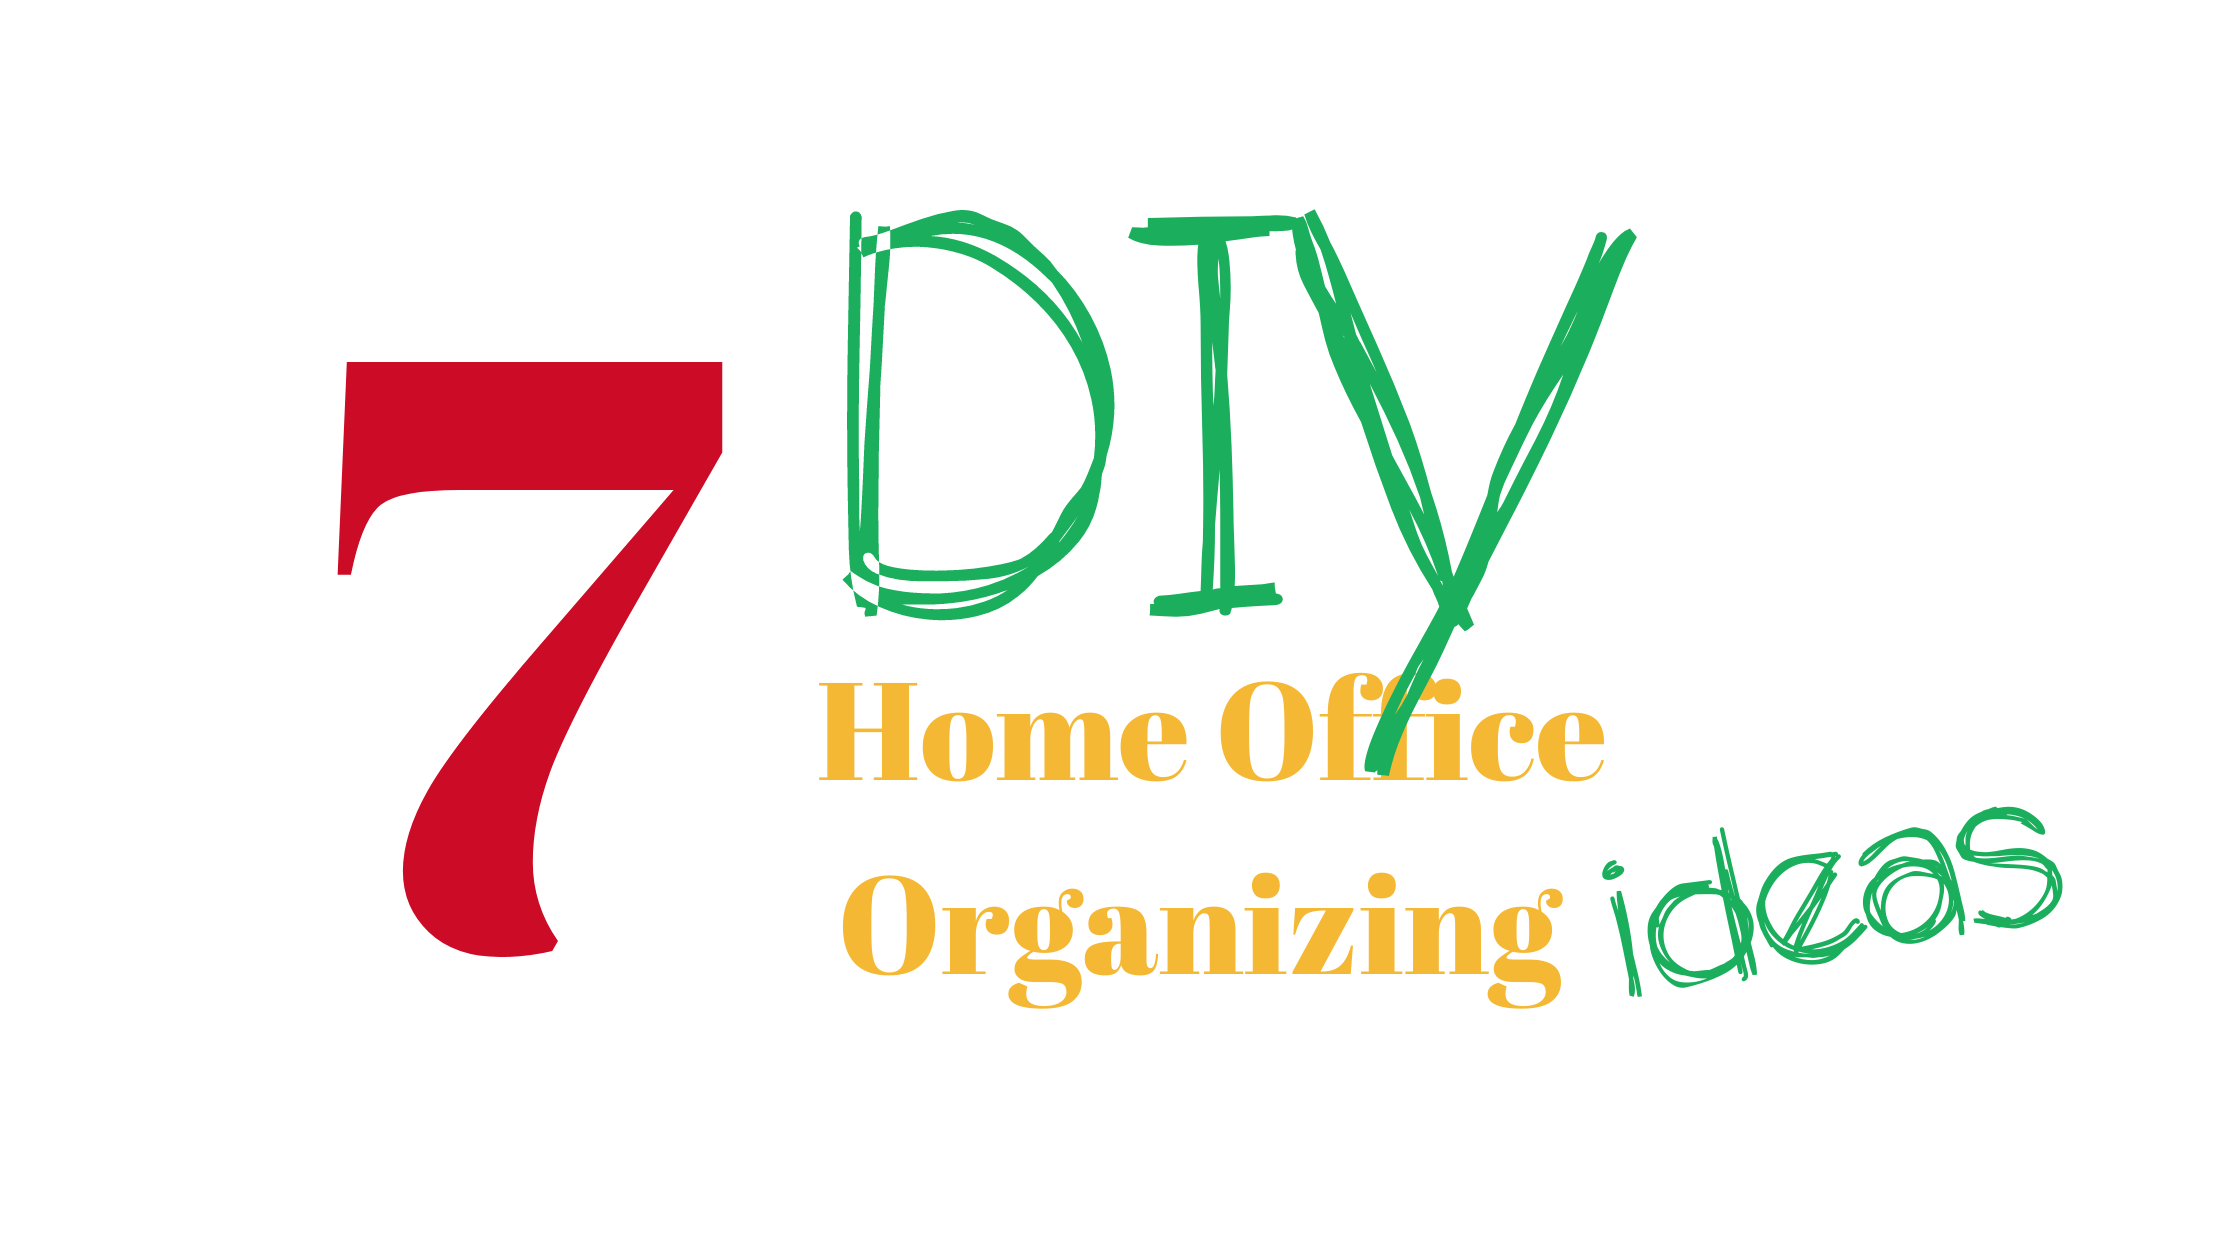 Home Office Organizing